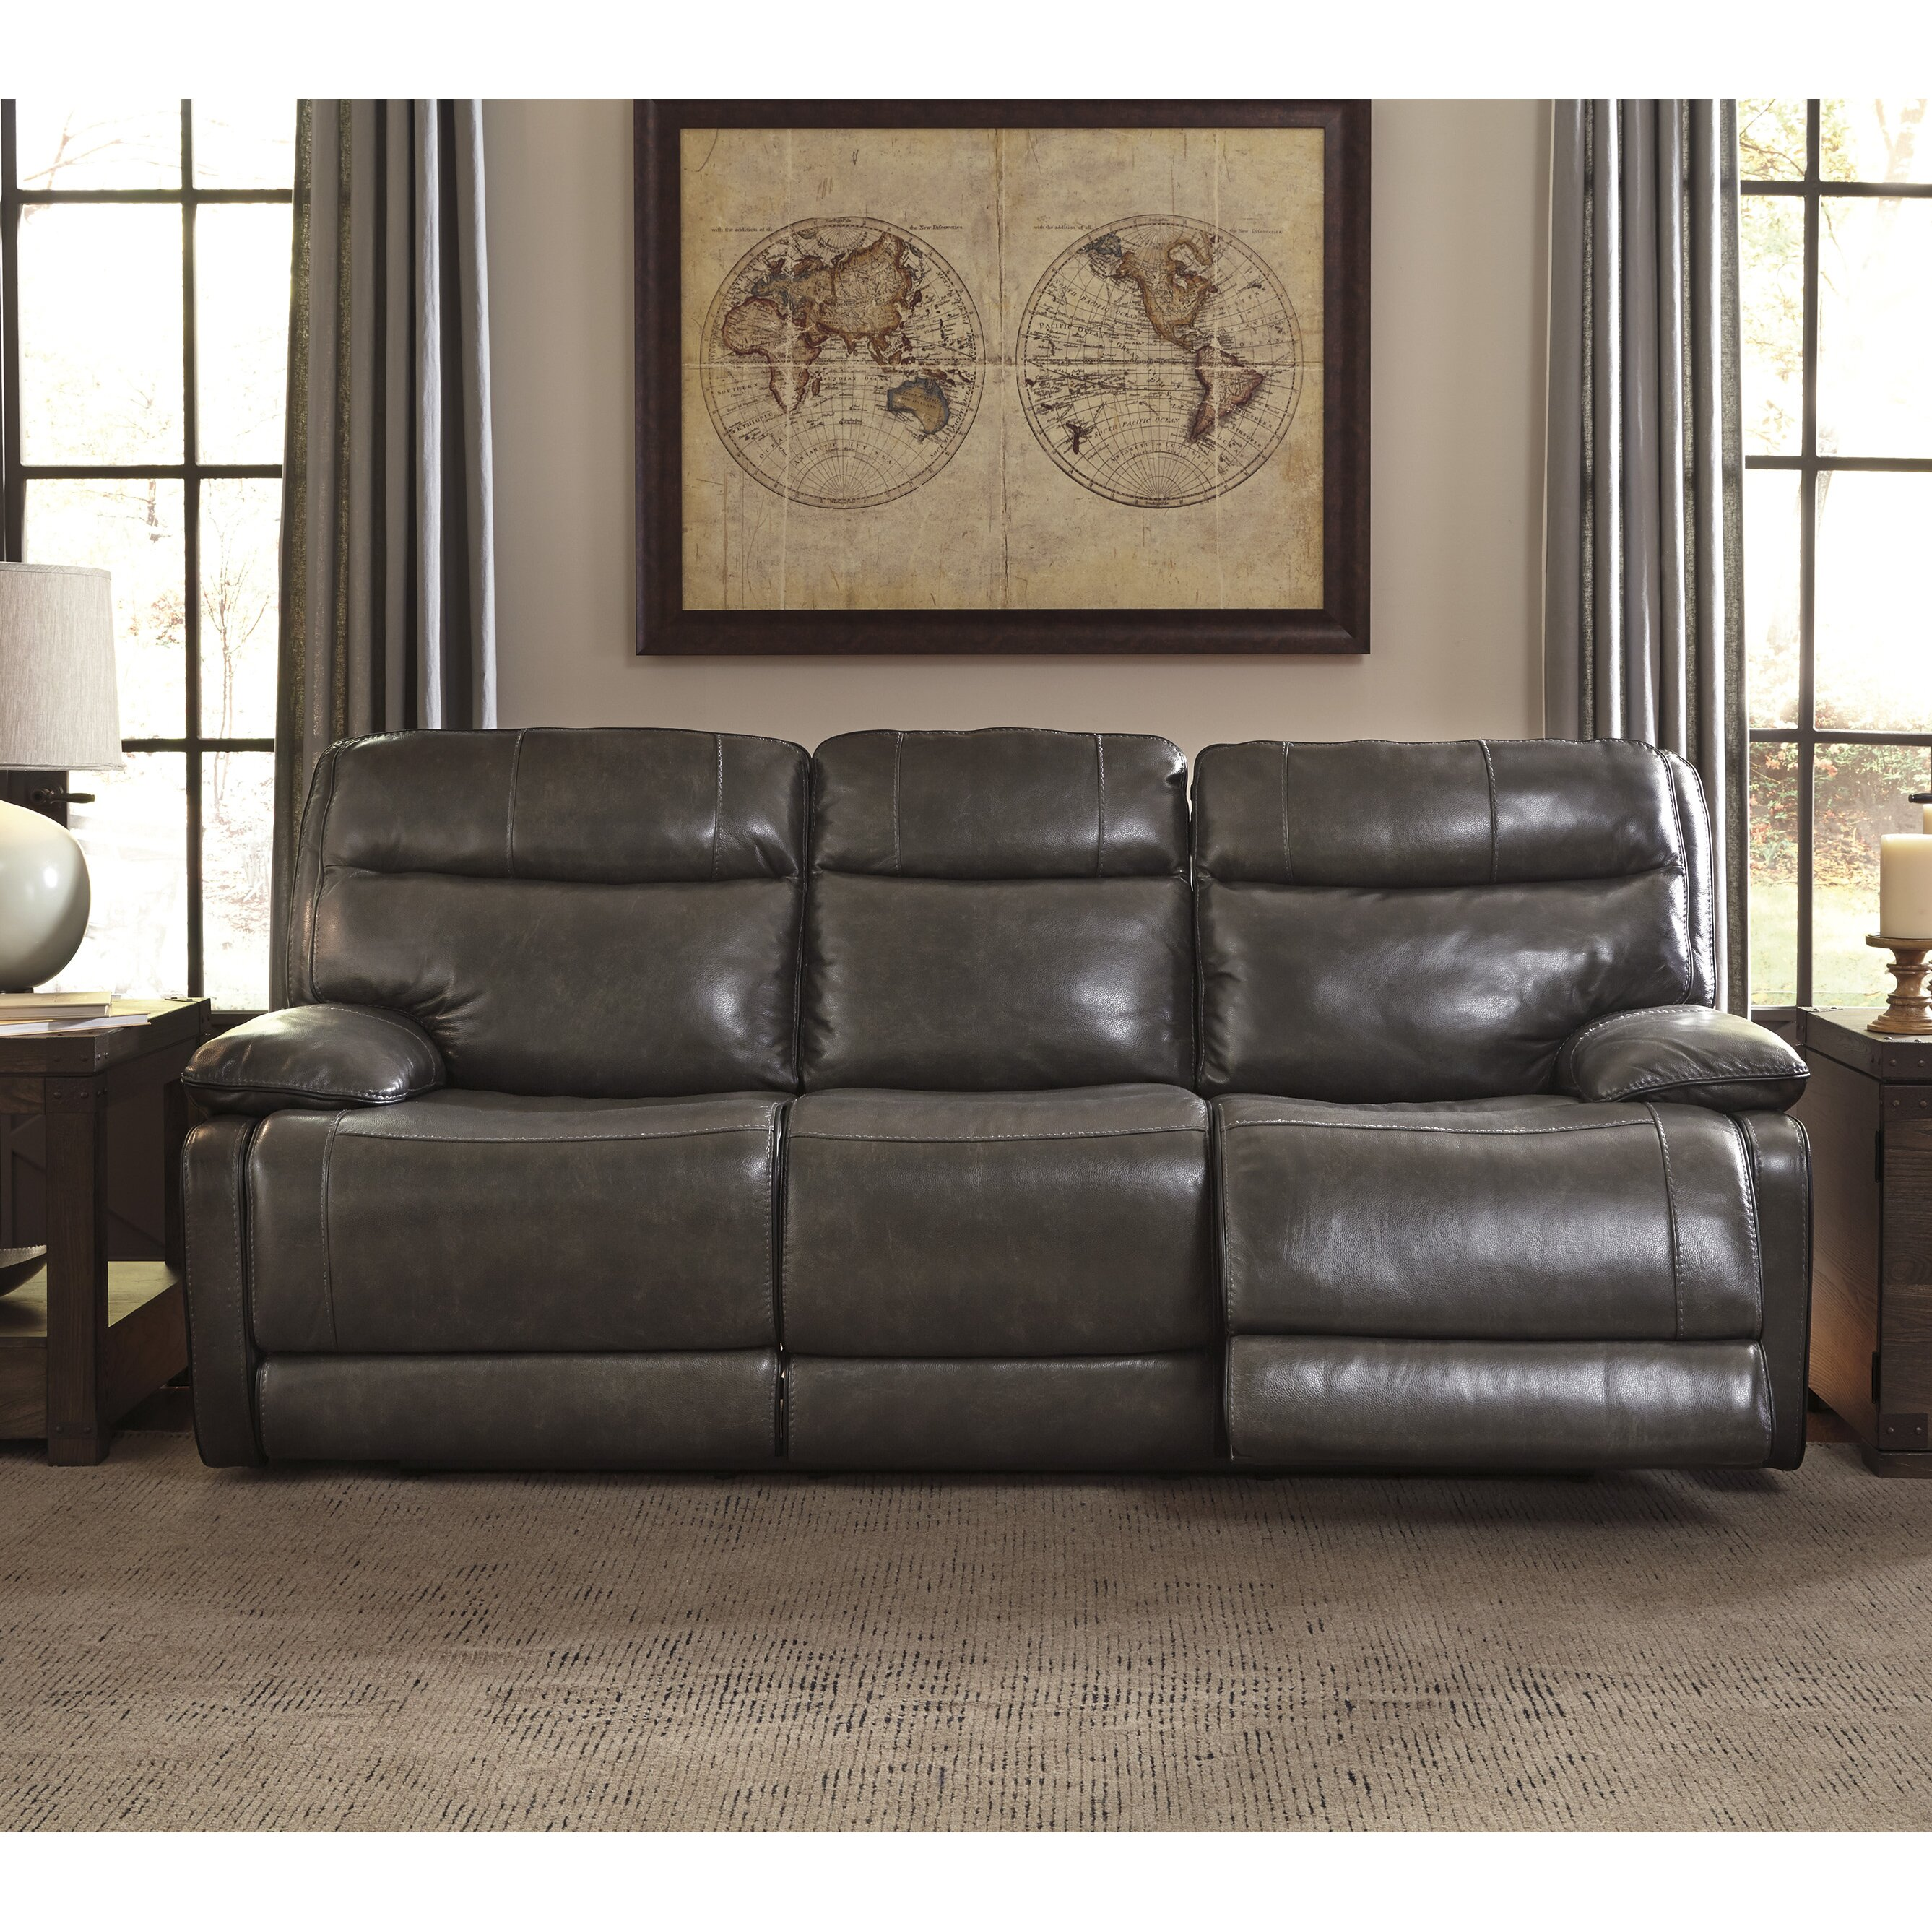 Signature design by ashley leather reclining sofa wayfair for Ashley leather sofa